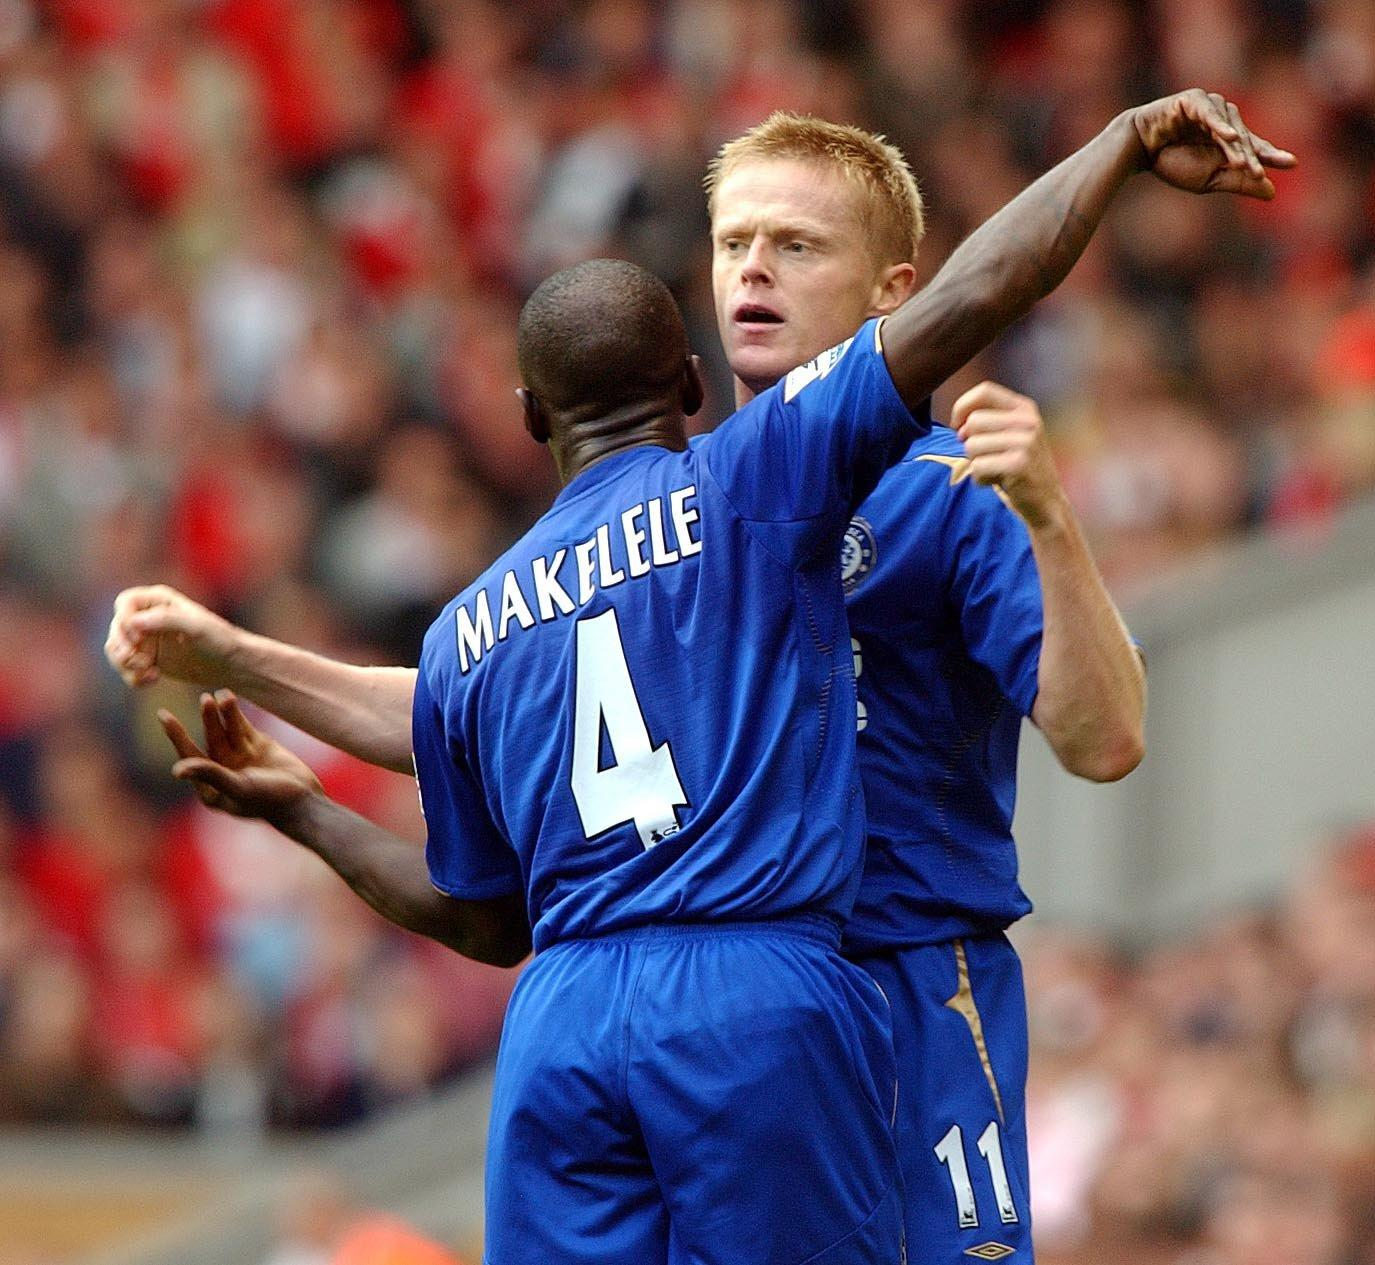 So good they named a position after him… and Claude Makelele